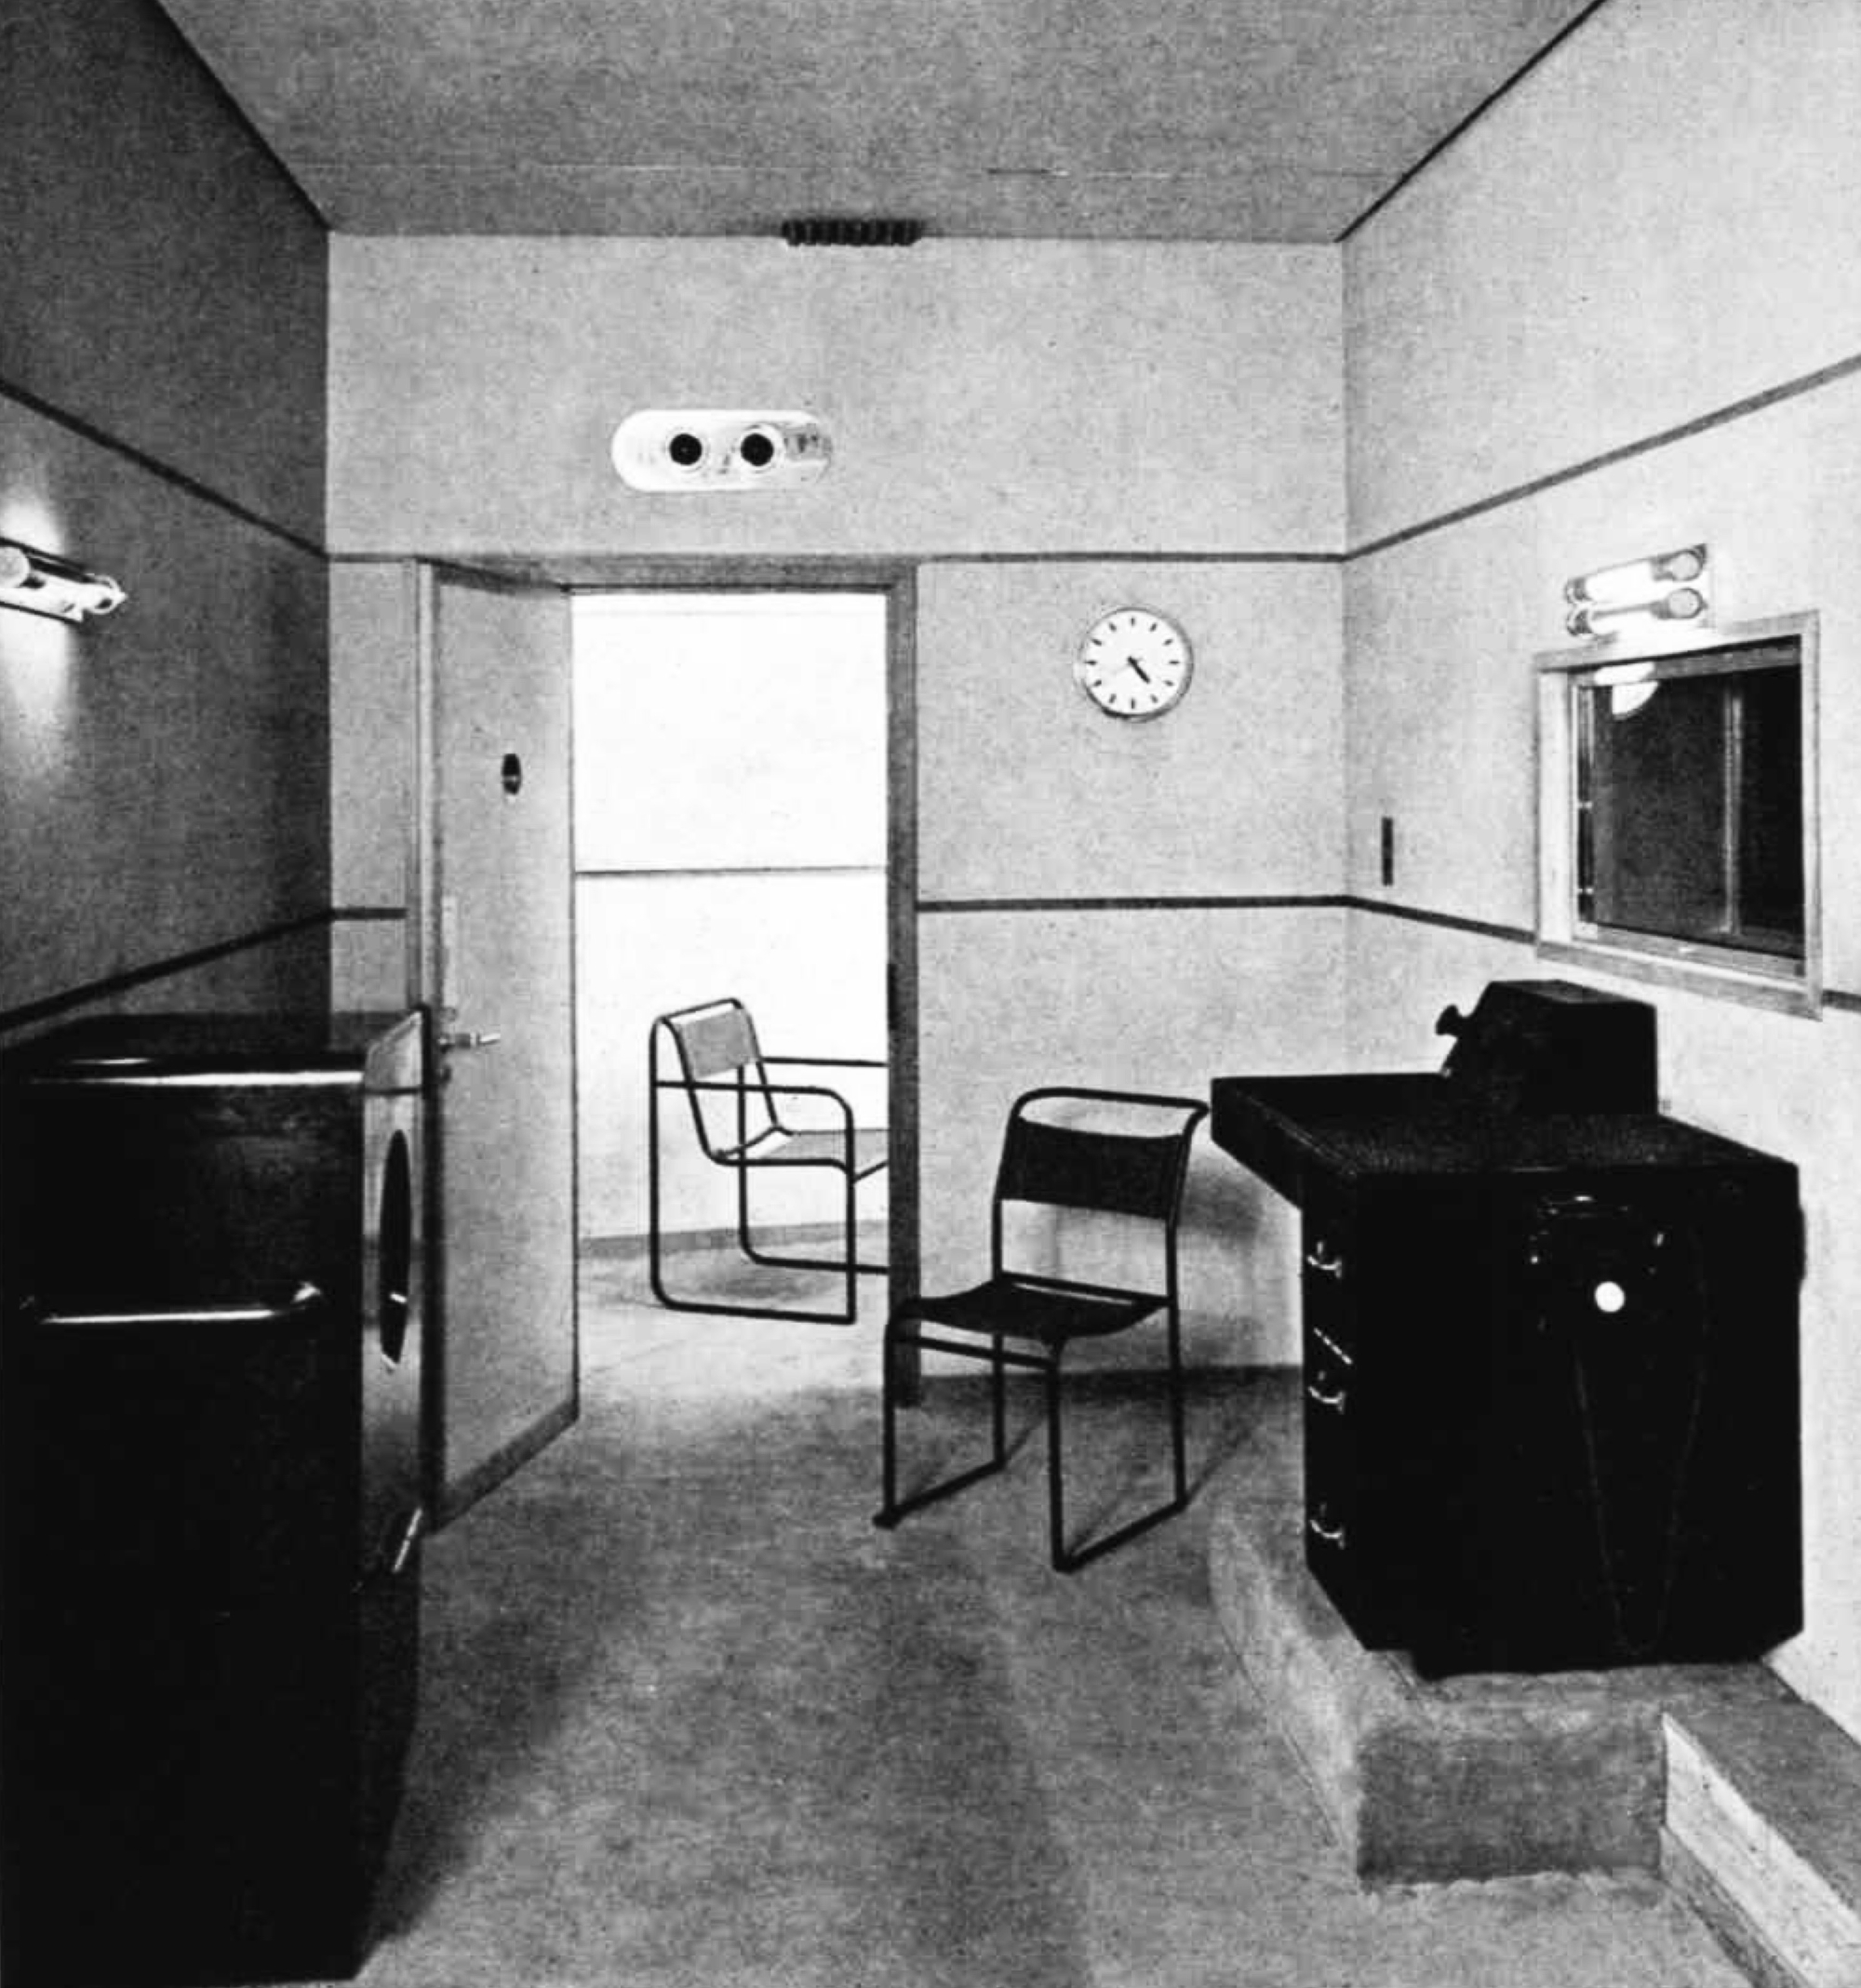 A control desk and a large speaker with an internal window to a studio; a door stands open with a single chair in the room beyond